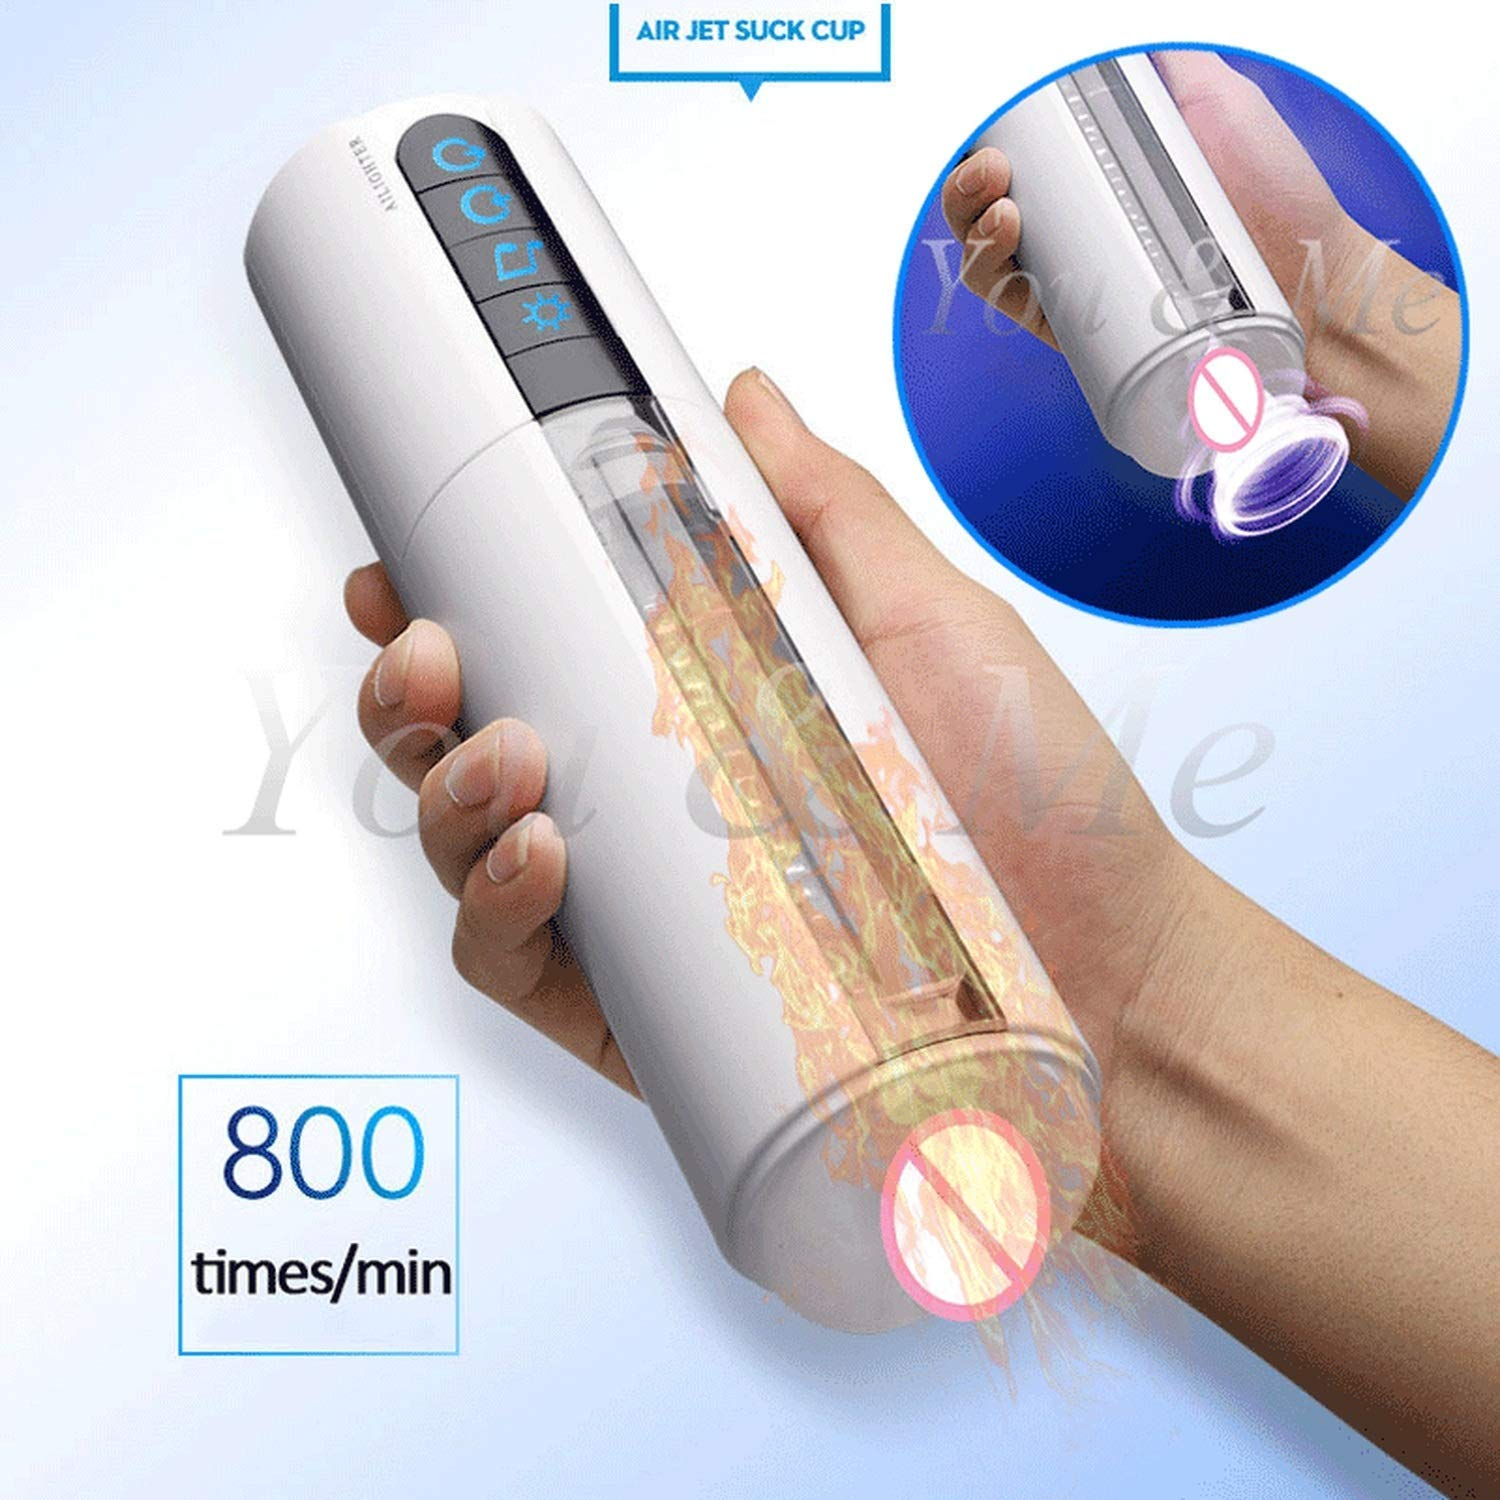 USEXMTY S-Tshirt New Intelligent Voice Heating Blowjob Sucking Privacy Machine Male Manuals Cup Artificial V-agina Real P-ussy for Men,Without Retail Box Harmless